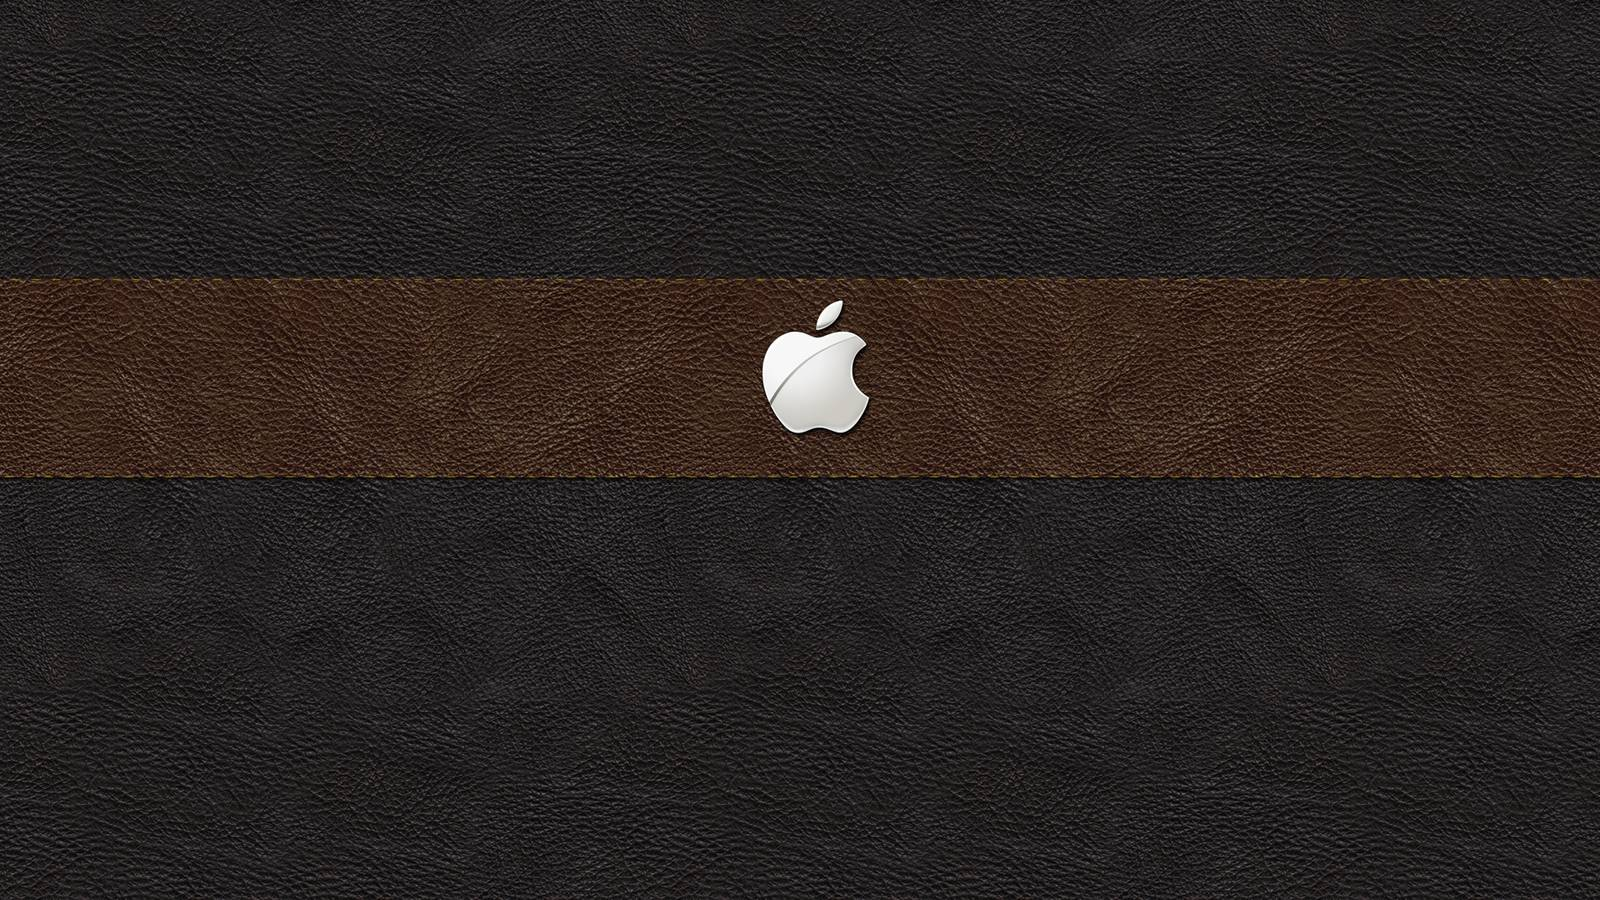 Iphone X Fortnite Wallpapers Leather Apple Wallpapers Wallpaper Cave